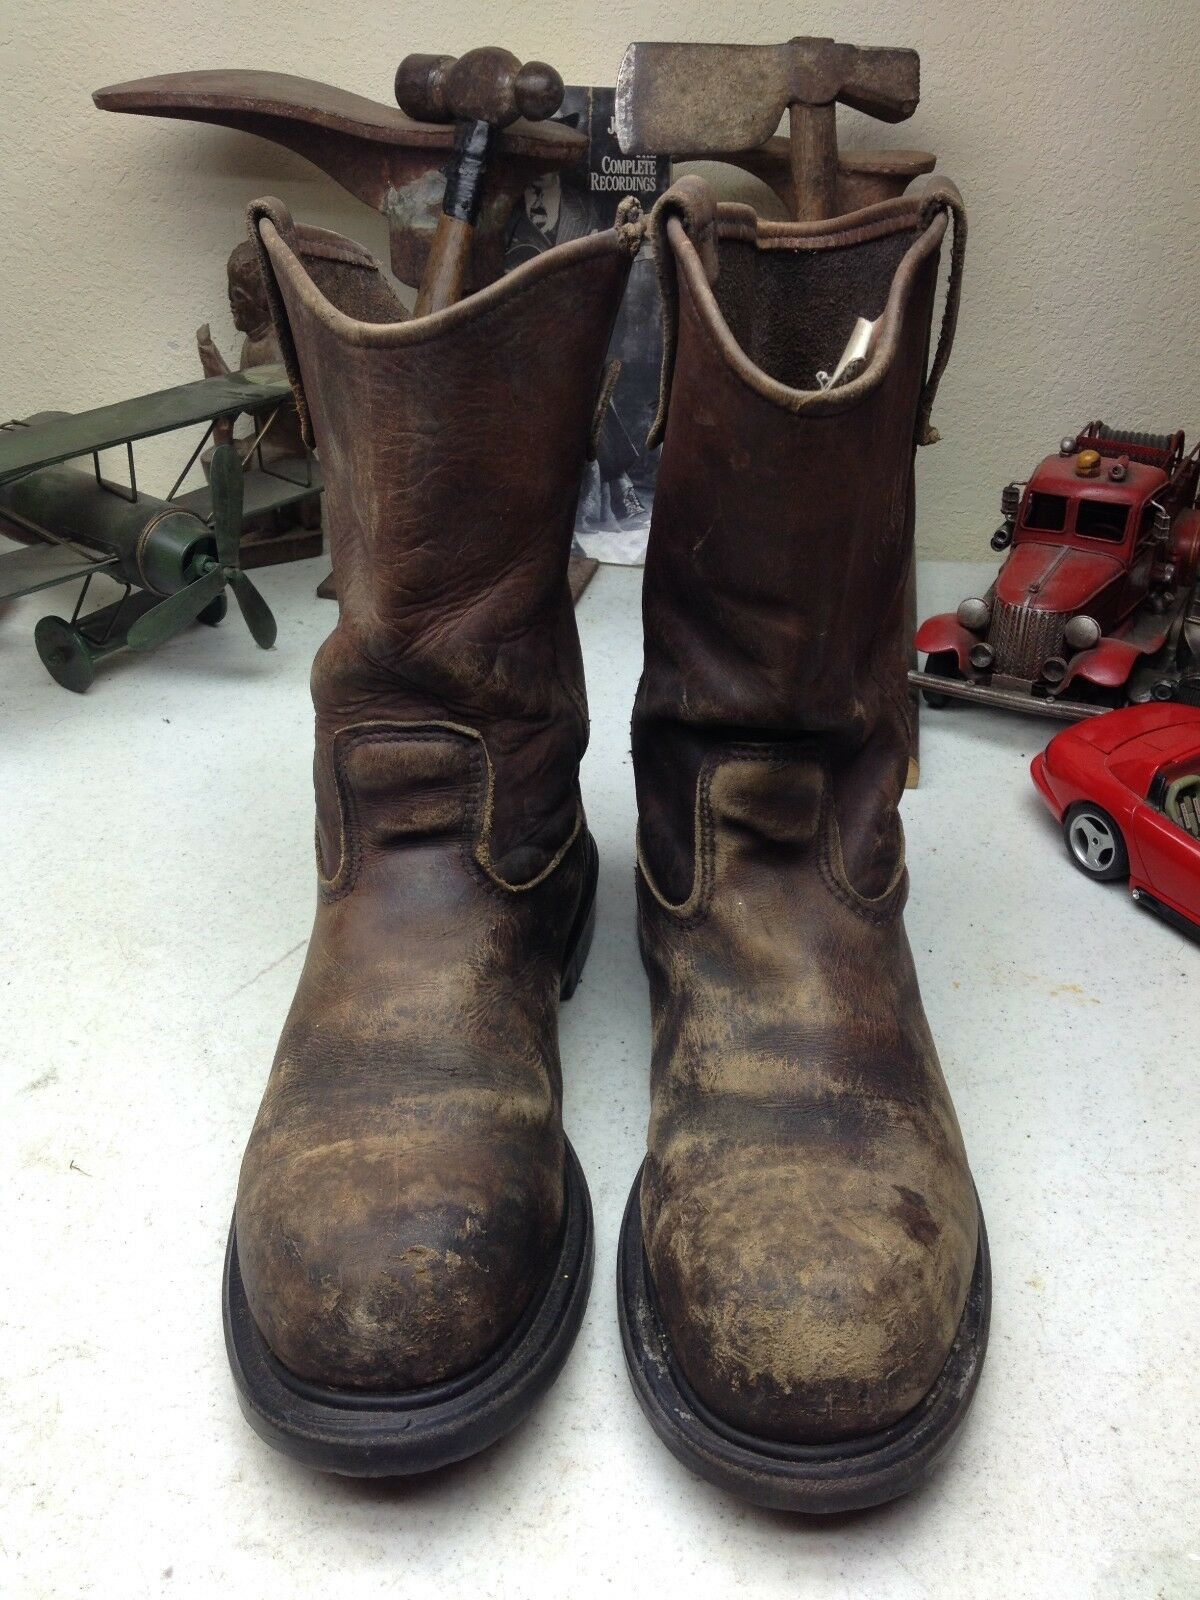 rot WING 2231 2231 2231 DISTRESSED USA braun LEATHER OIL RIG TOOL PUSHER BOSS Stiefel 11.5 D b8e7f0